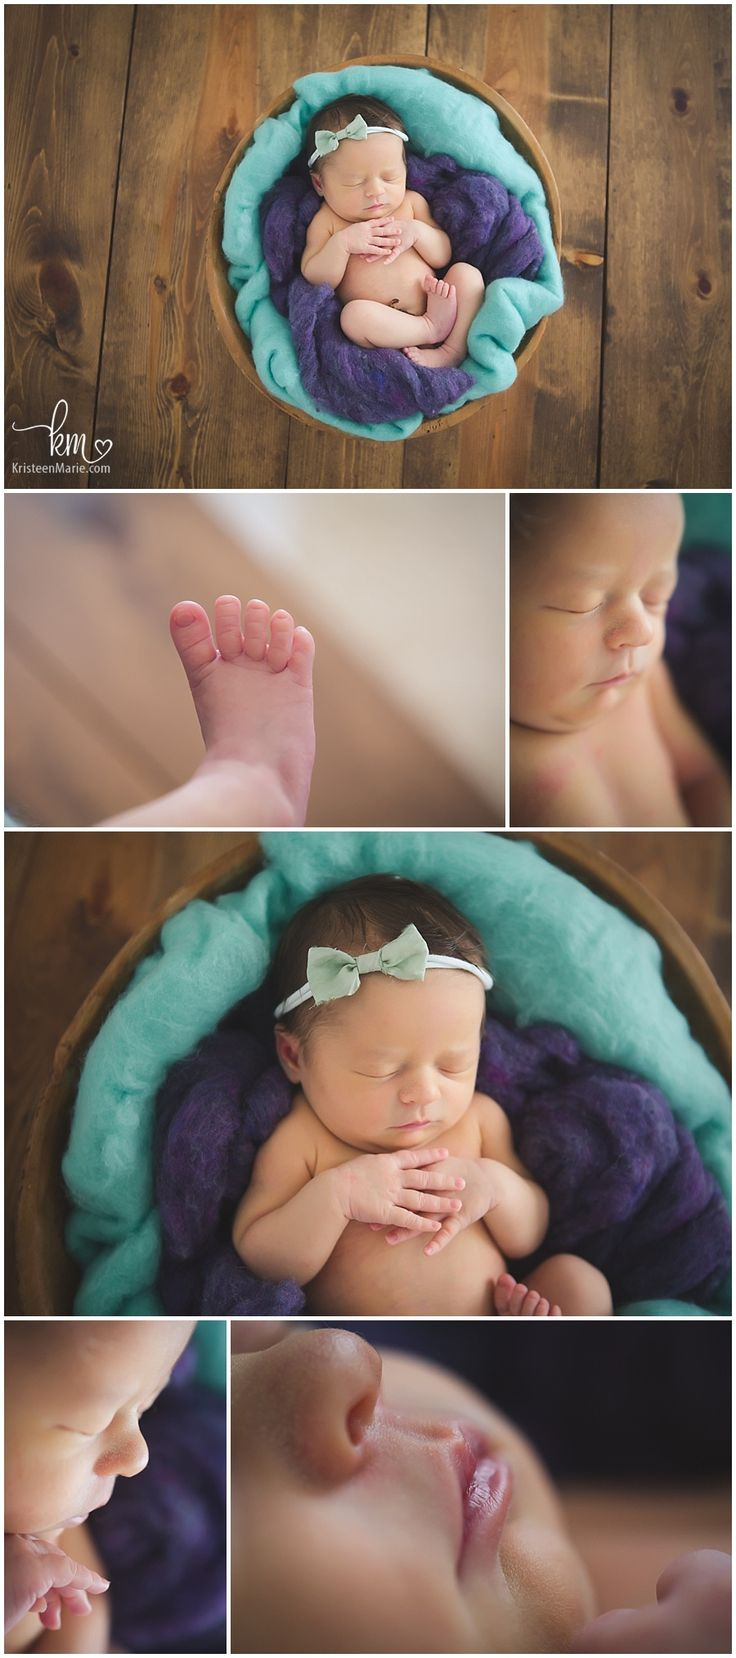 teal and purple newborn photograph - rustic image and baby features